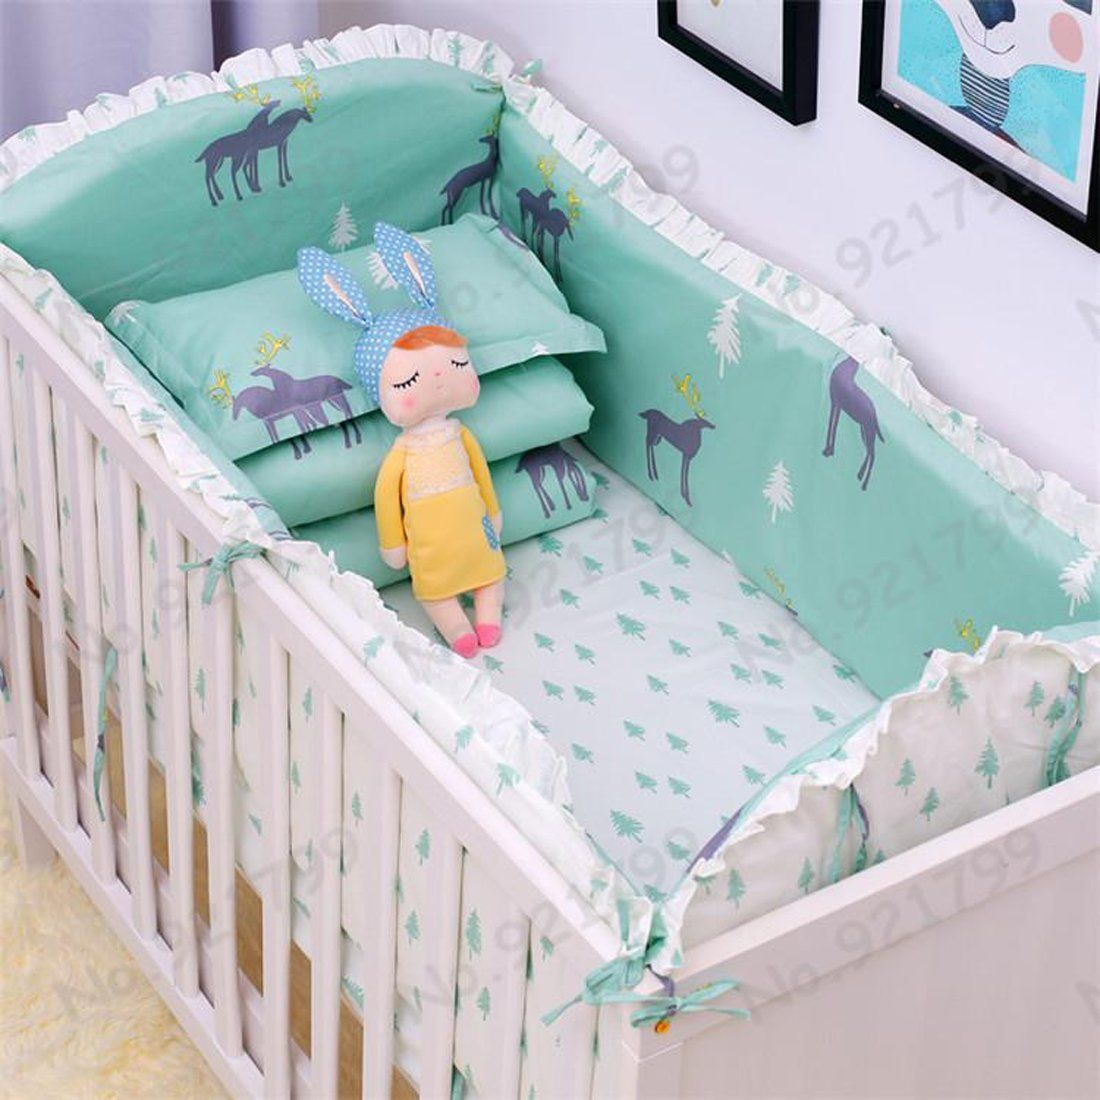 Baby S Crib Bumpers 6pcs Set Bed Around Cotton Thickening Cartoon Baby Bedding Sets Baby Cribs Baby Cot Bedding